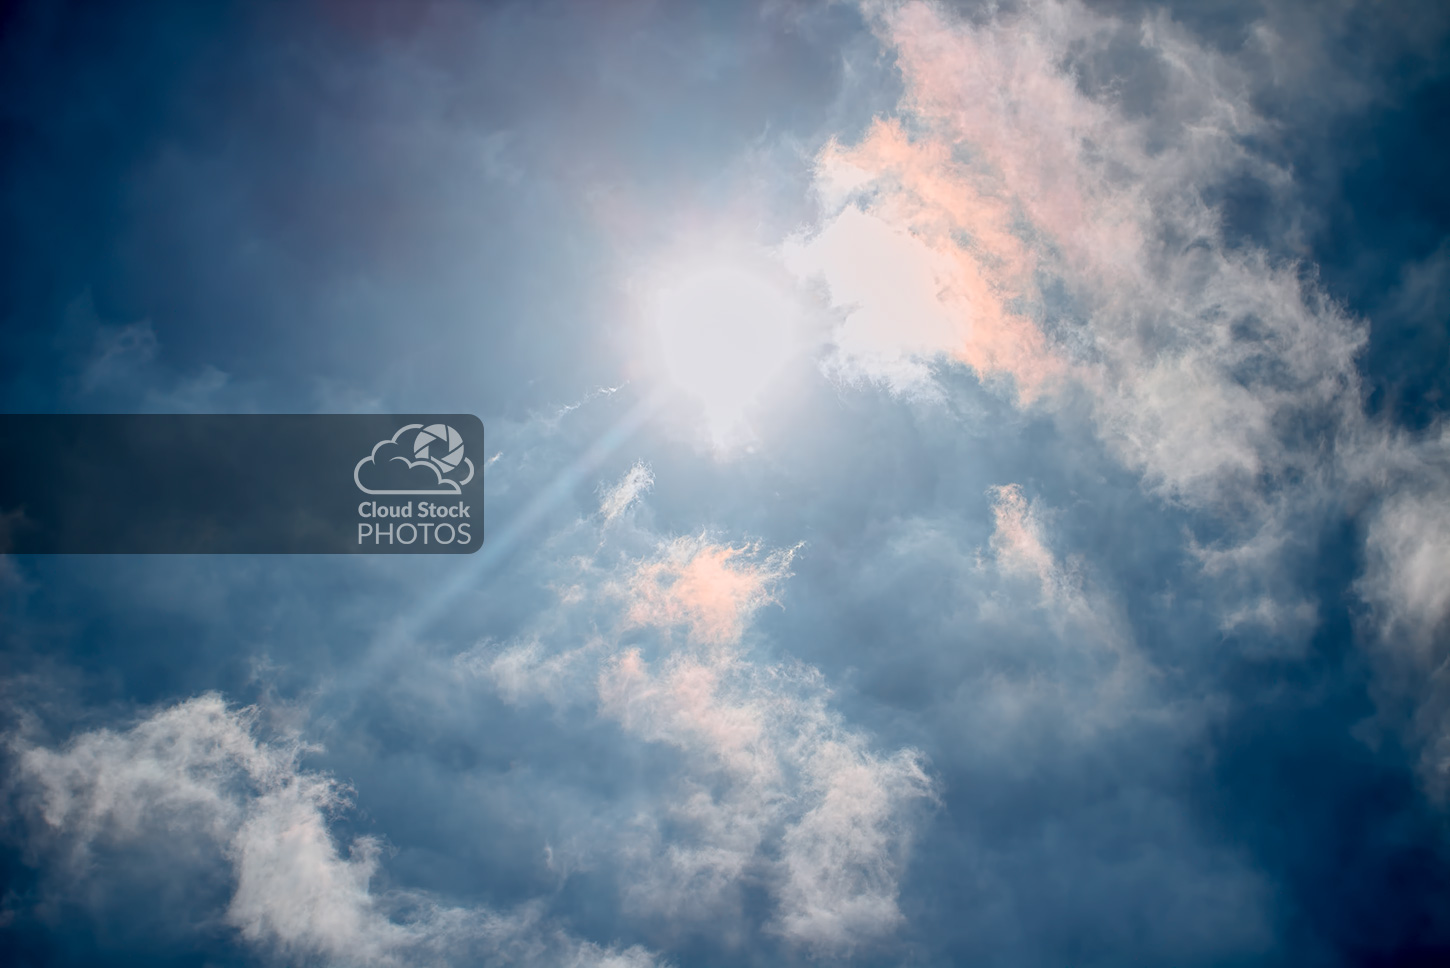 95049ba076ed0 Amazing Clouds Photo with Crepuscular Rays - Cloud Stock Photos